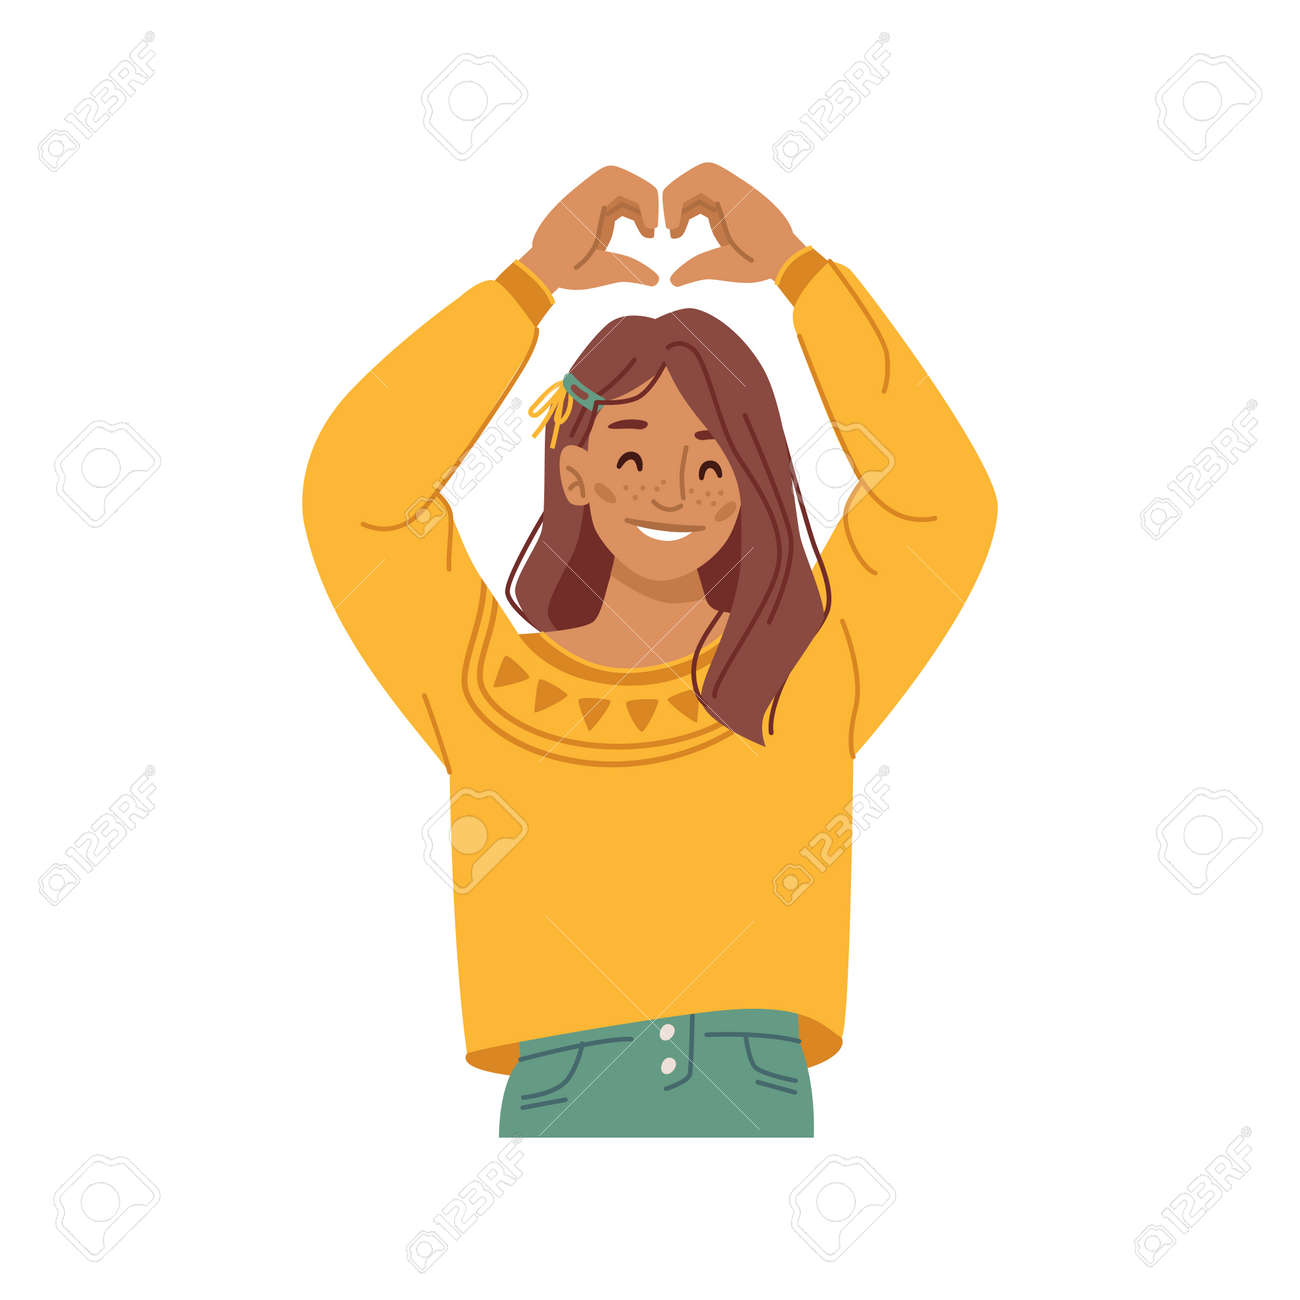 Girl kid showing heart sign with hands, isolated female personage preteen smiling and gesturing. Love and devotion, support and charity symbol of caring and empathy. Flat style cartoon character - 171582028